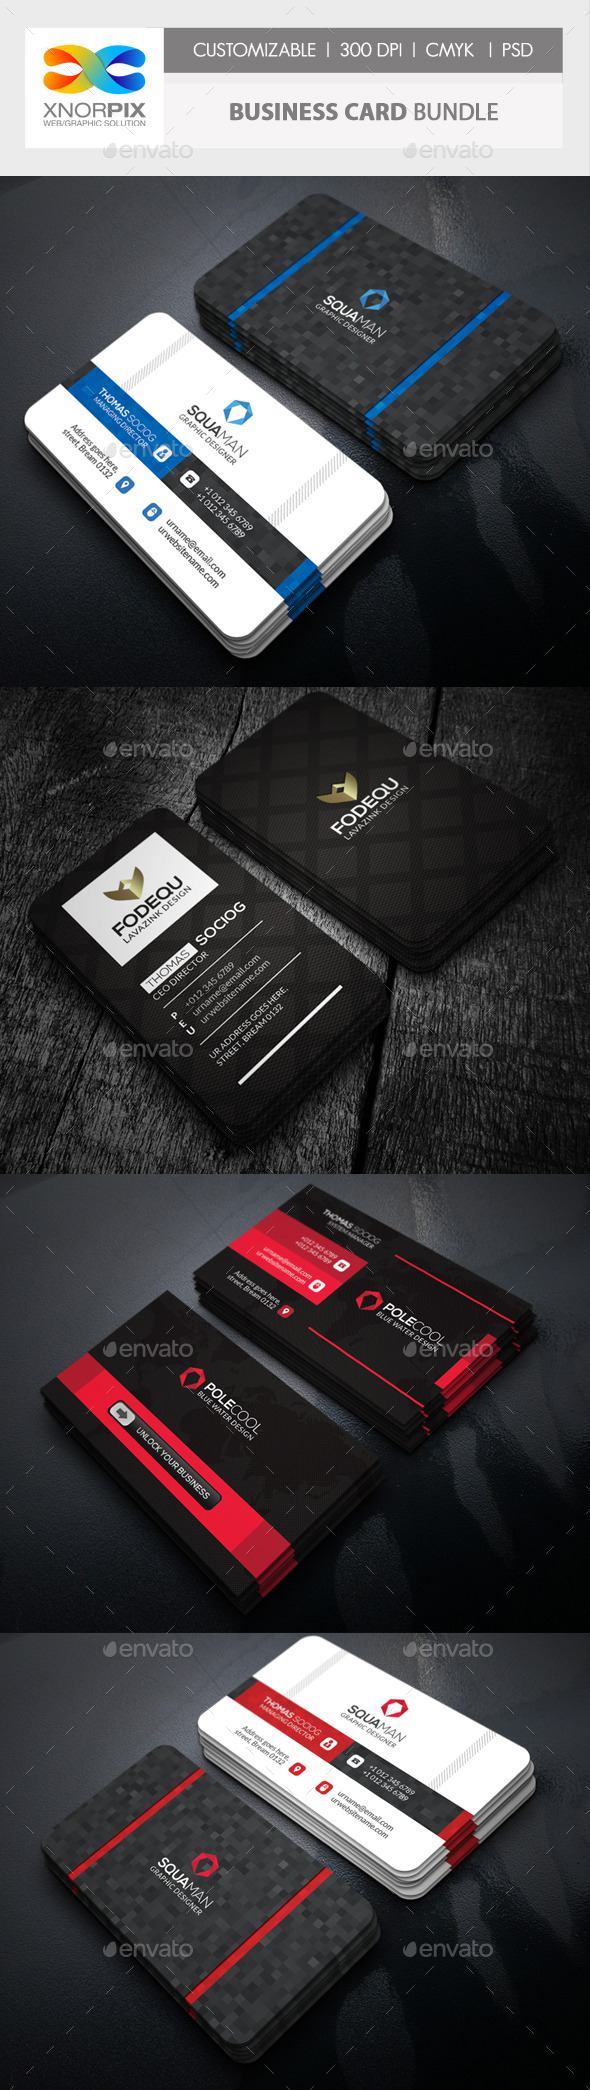 Business Card Bundle 3 in 1-Vol 58 - Corporate Business Cards